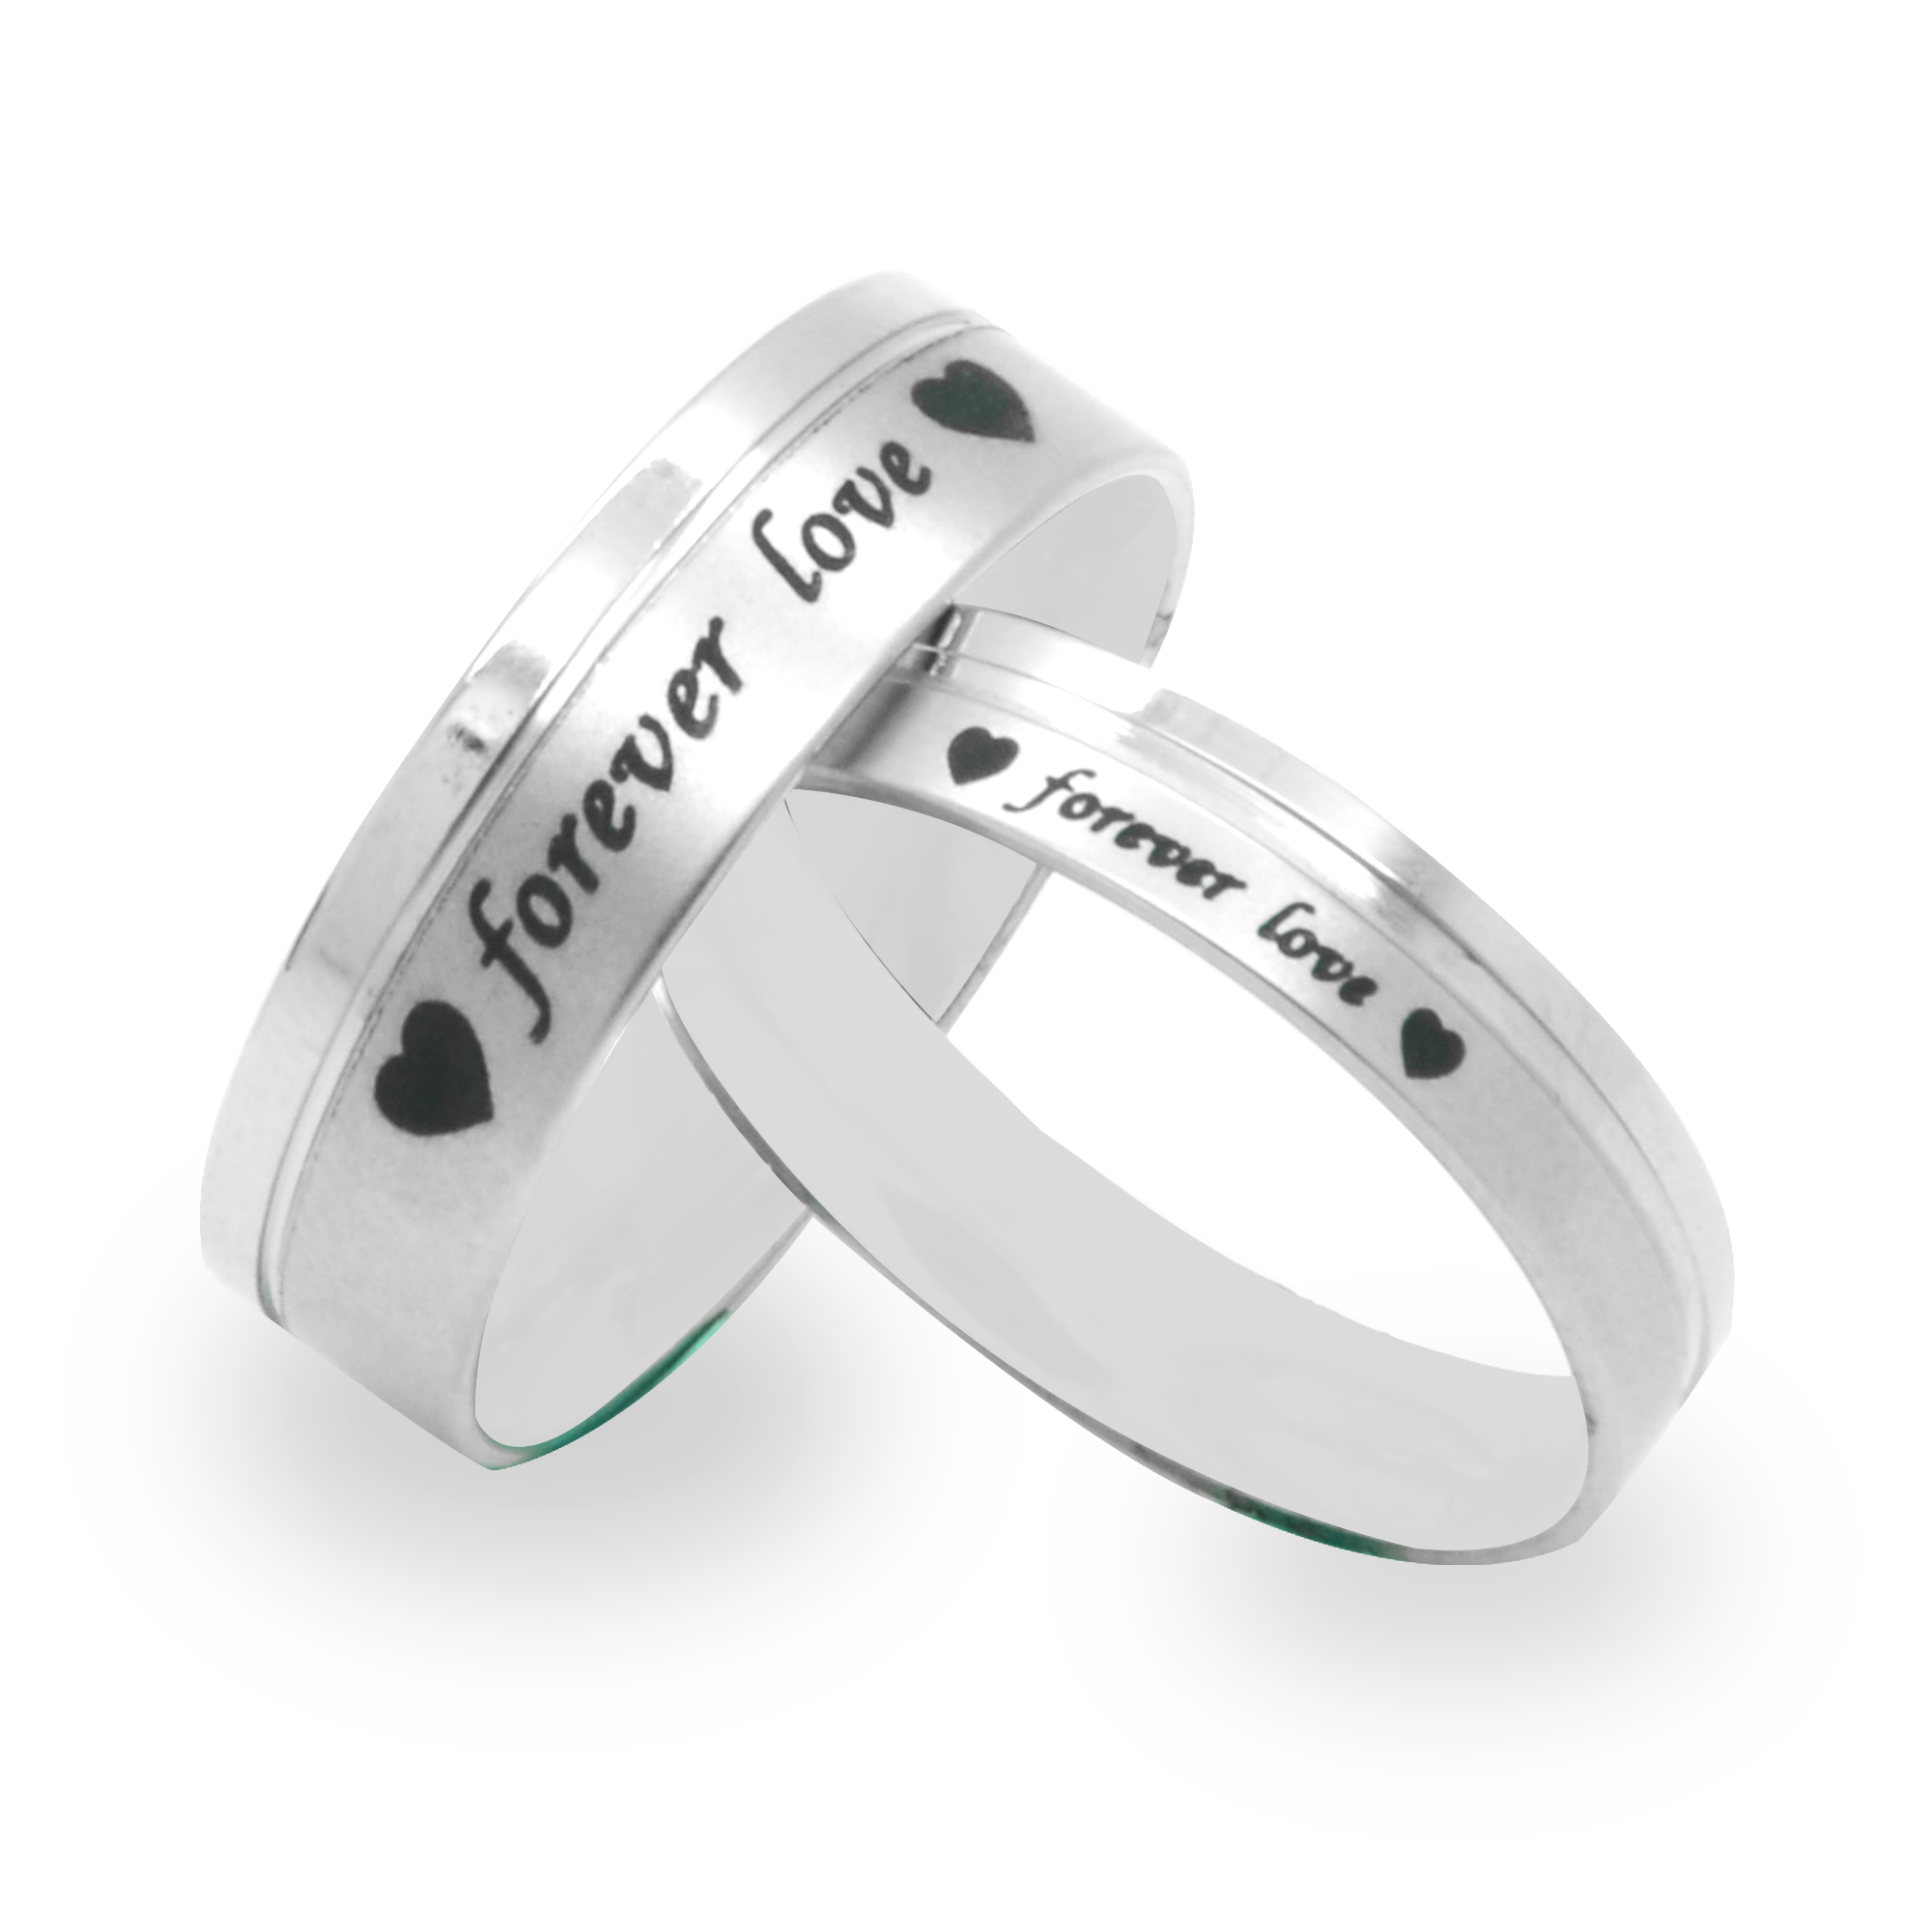 matching band athena com amazon dp wedding heart couple selectable his rings shape engagement size set jewelry titanium series hers